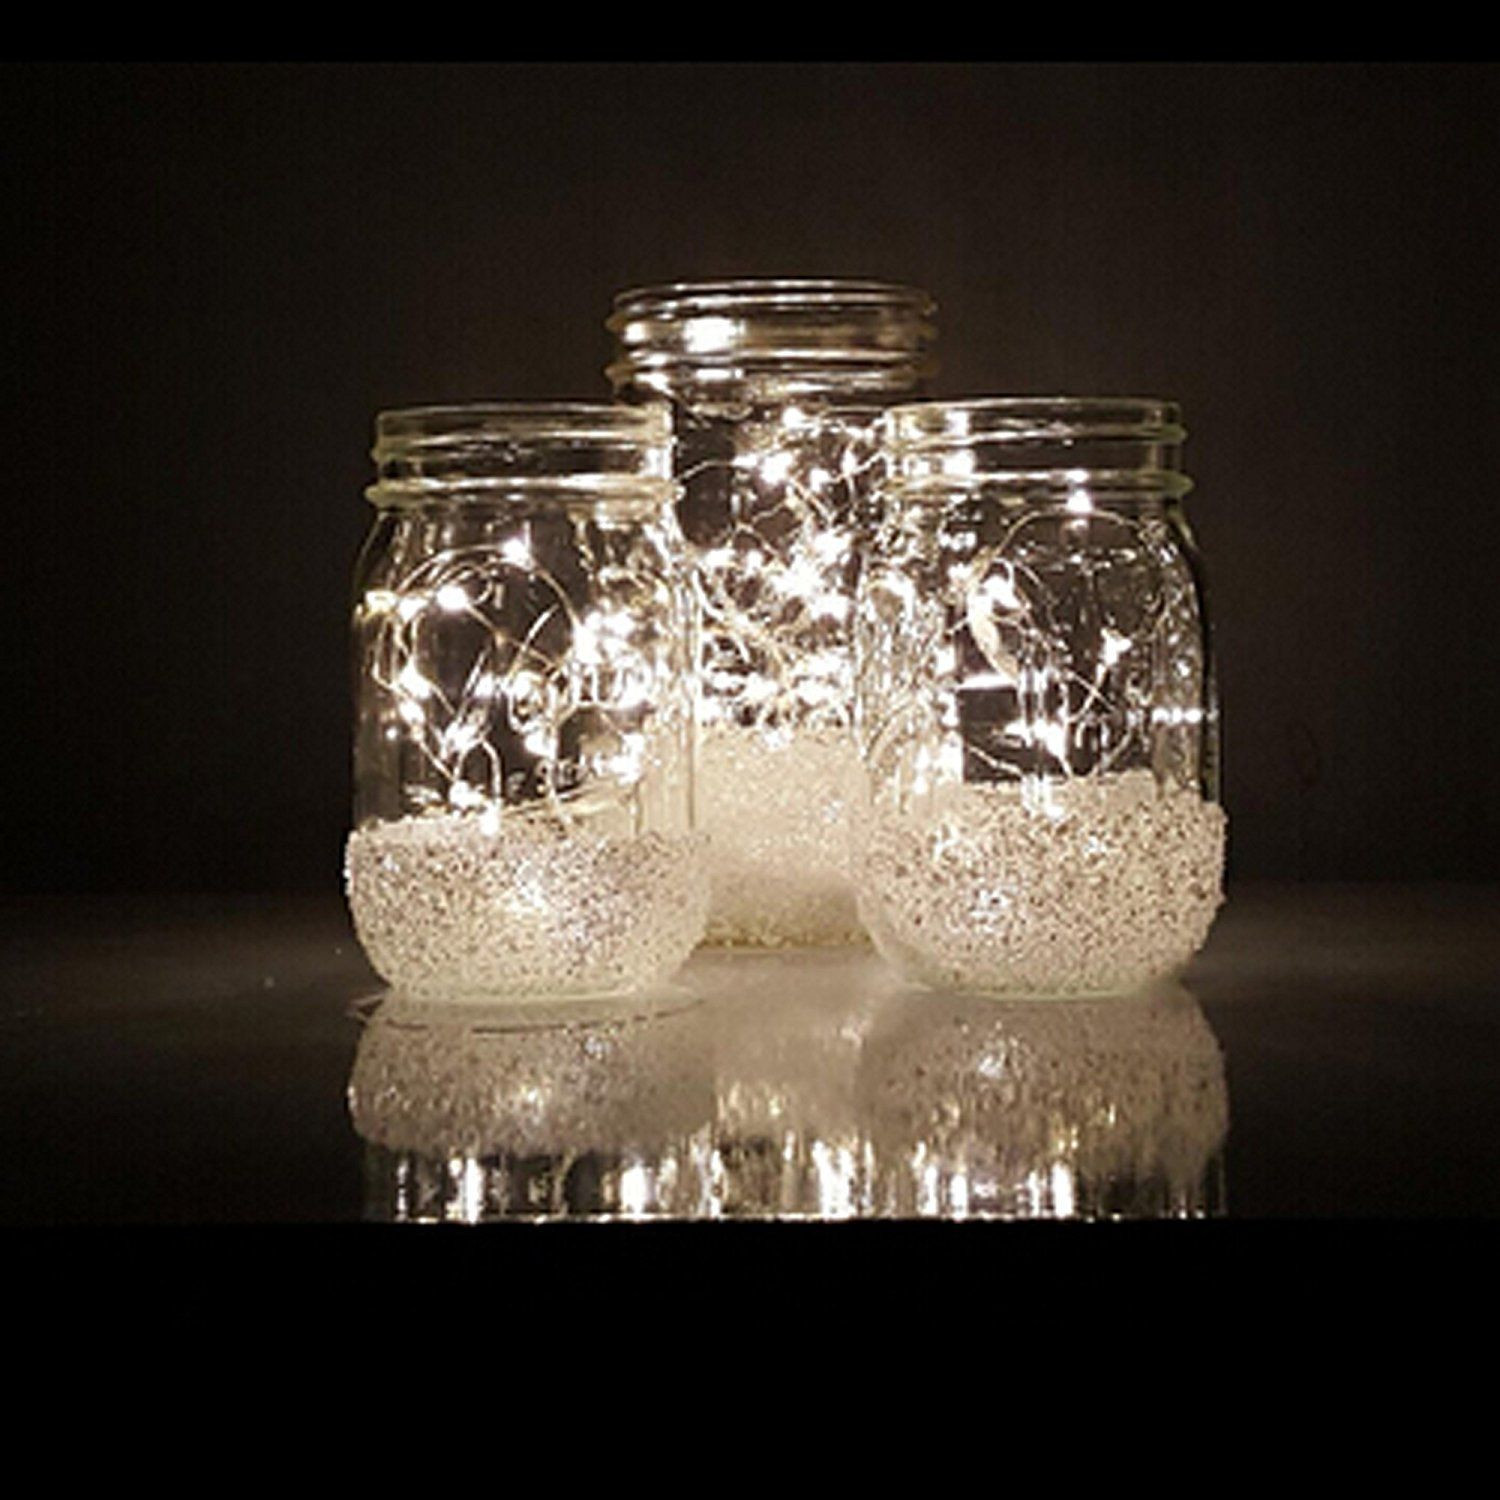 29 Stylish Flower Vase Led Lights 2021 free download flower vase led lights of white crystal glitter outside on bottoms with fairy led lights intended for white crystal glitter outside on bottoms with fairy led lights inside use mirrors for mo